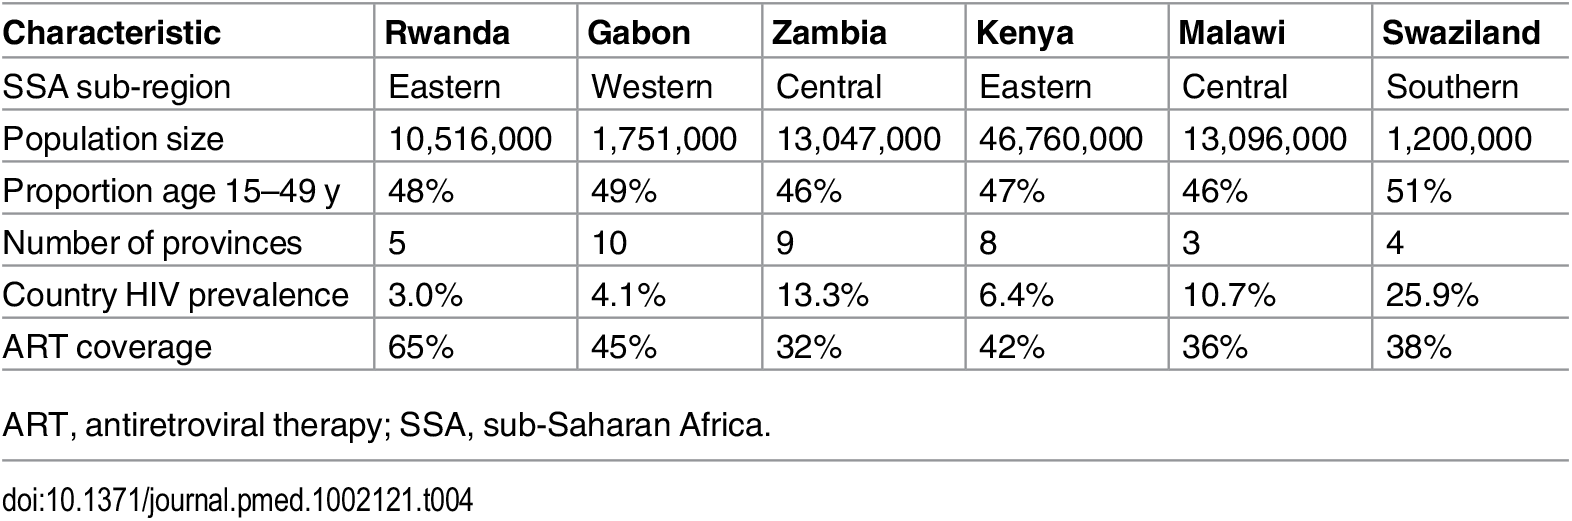 Descriptive information on demographic and HIV patterns for the six countries studied.